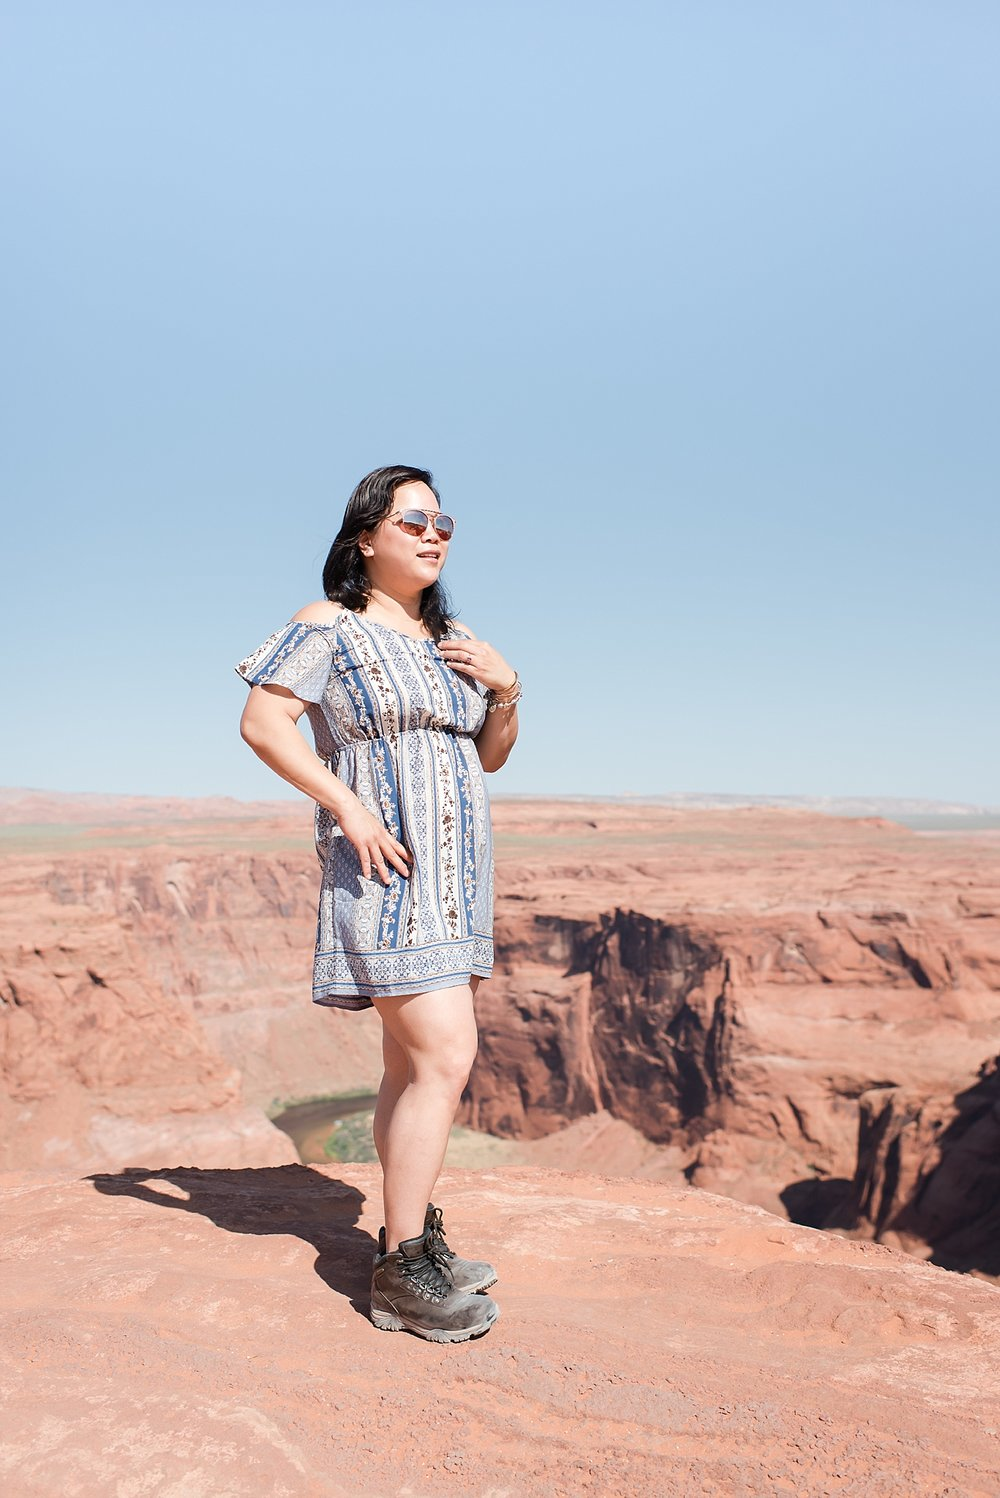 Darlynne looking stylish at Horseshoe Bend during late morning near Page, Arizona. Travel photo by Jade Min Photography.